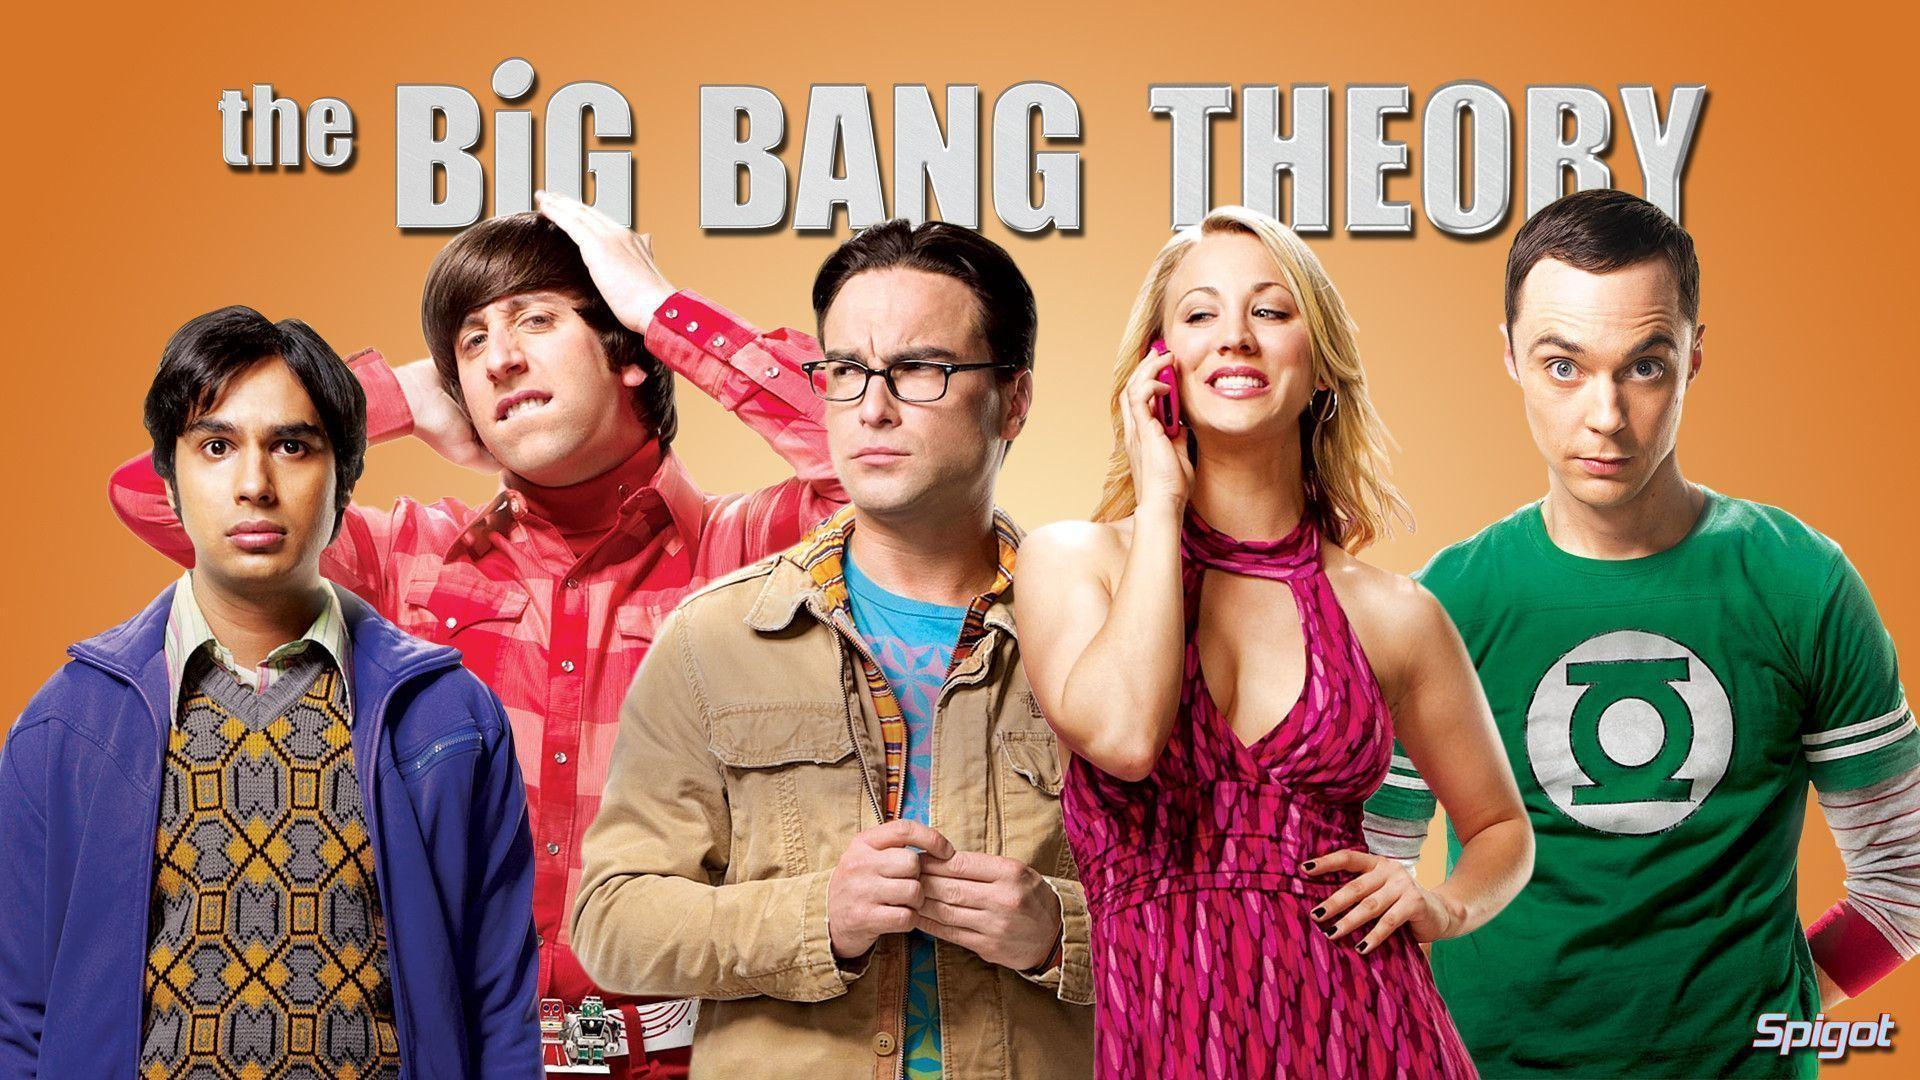 The Big Bang Theory Wallpapers Wallpaper Cave